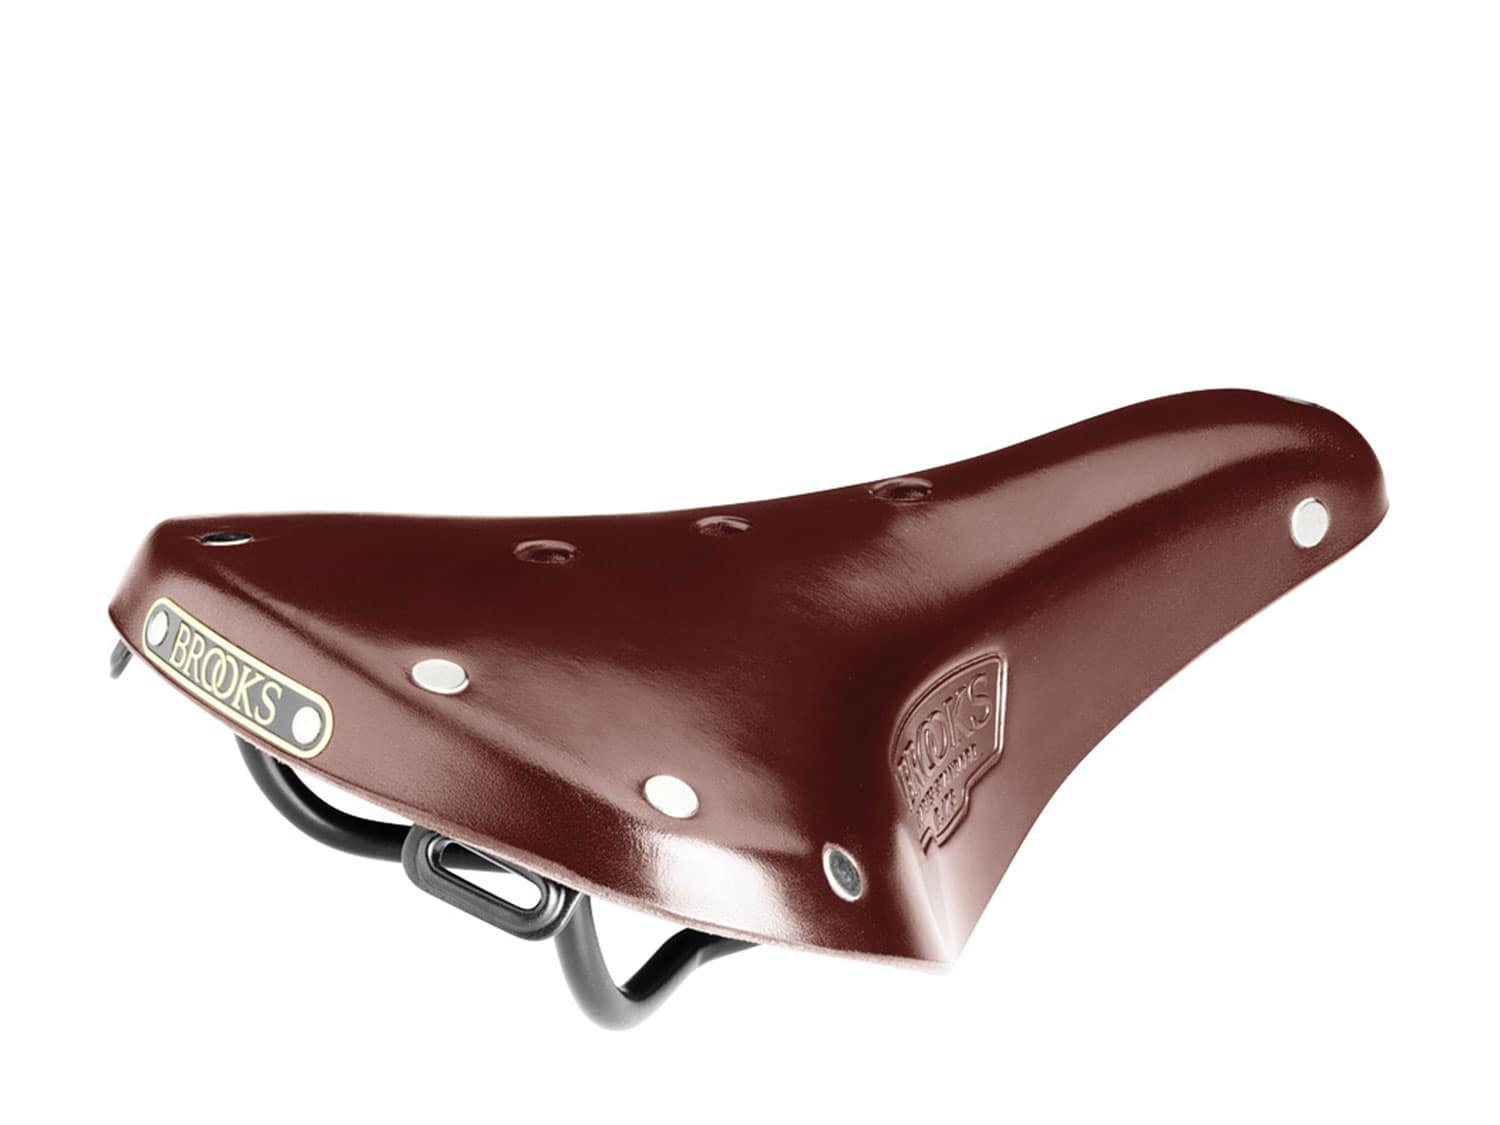 Brooks B17 S Standard Ledersattel | brown